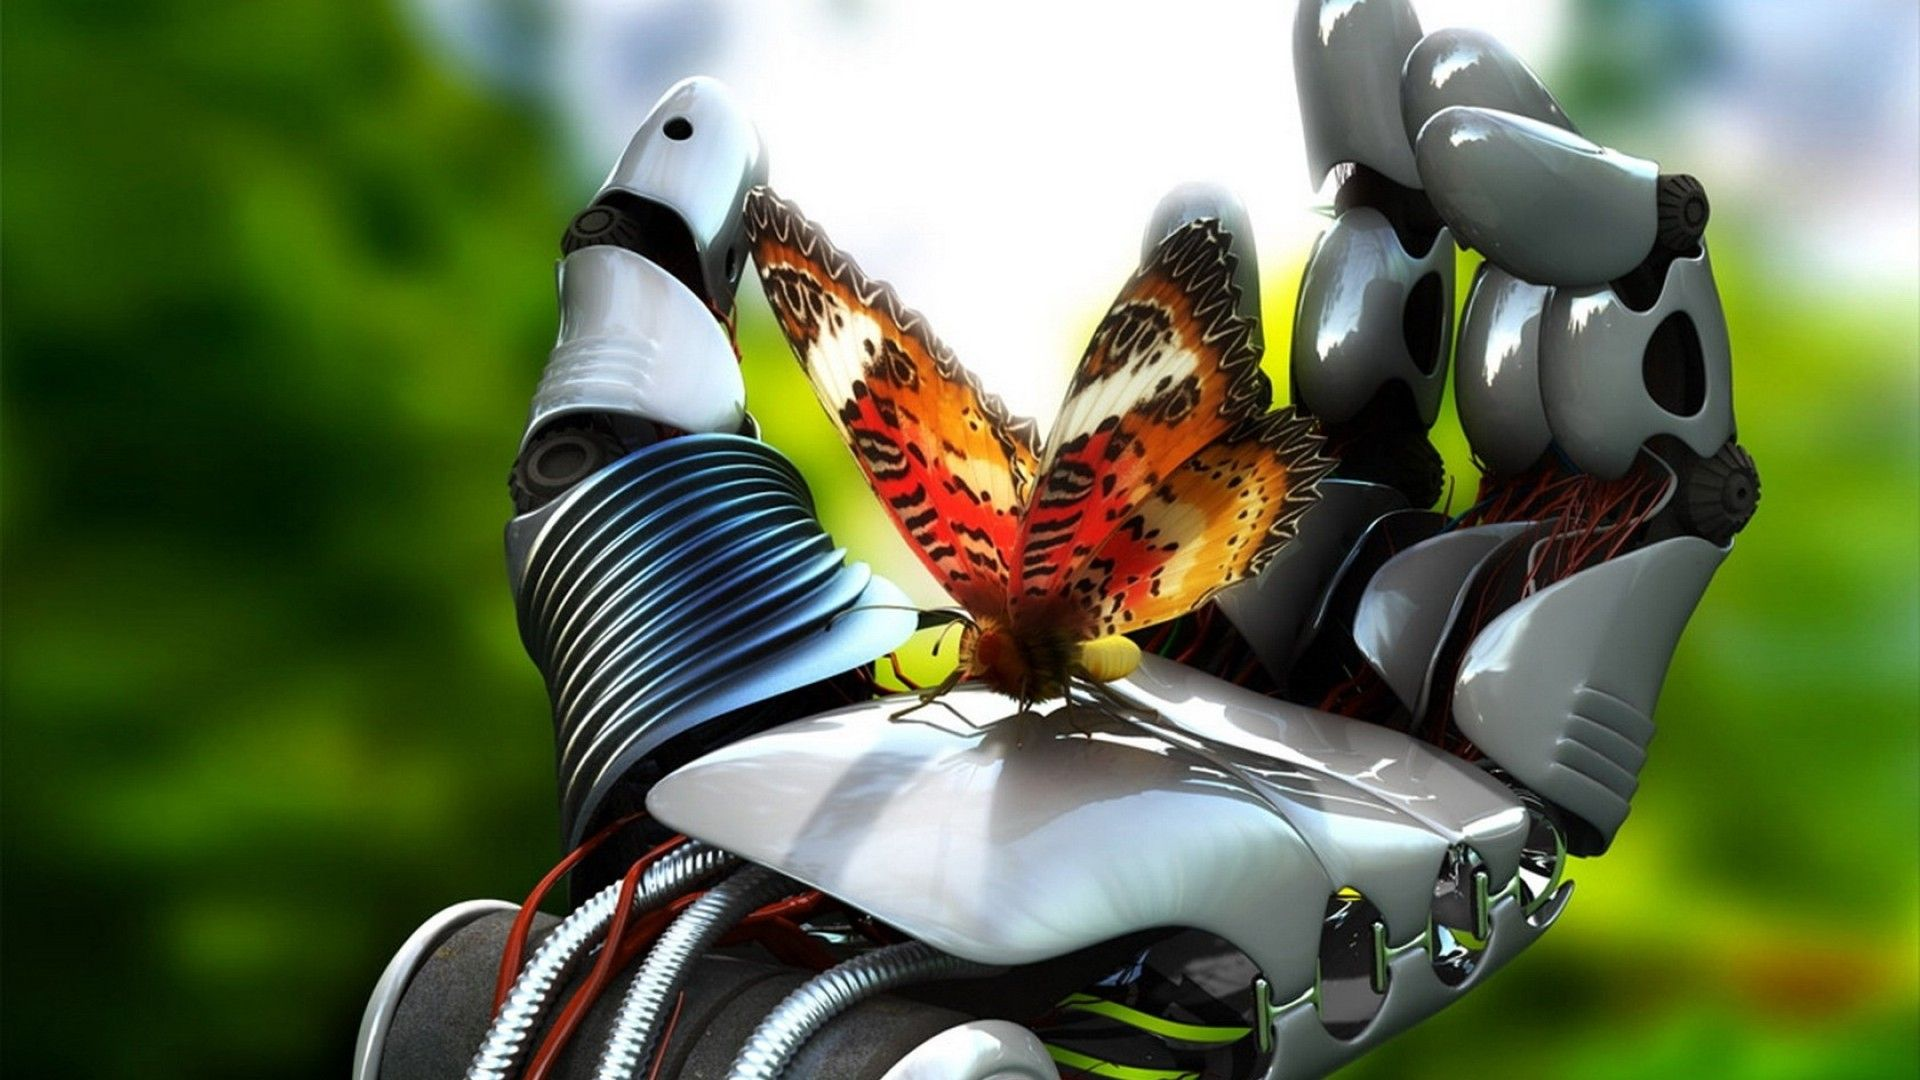 robot hand butterfly 3d wallpaper images full hd free #78928828884